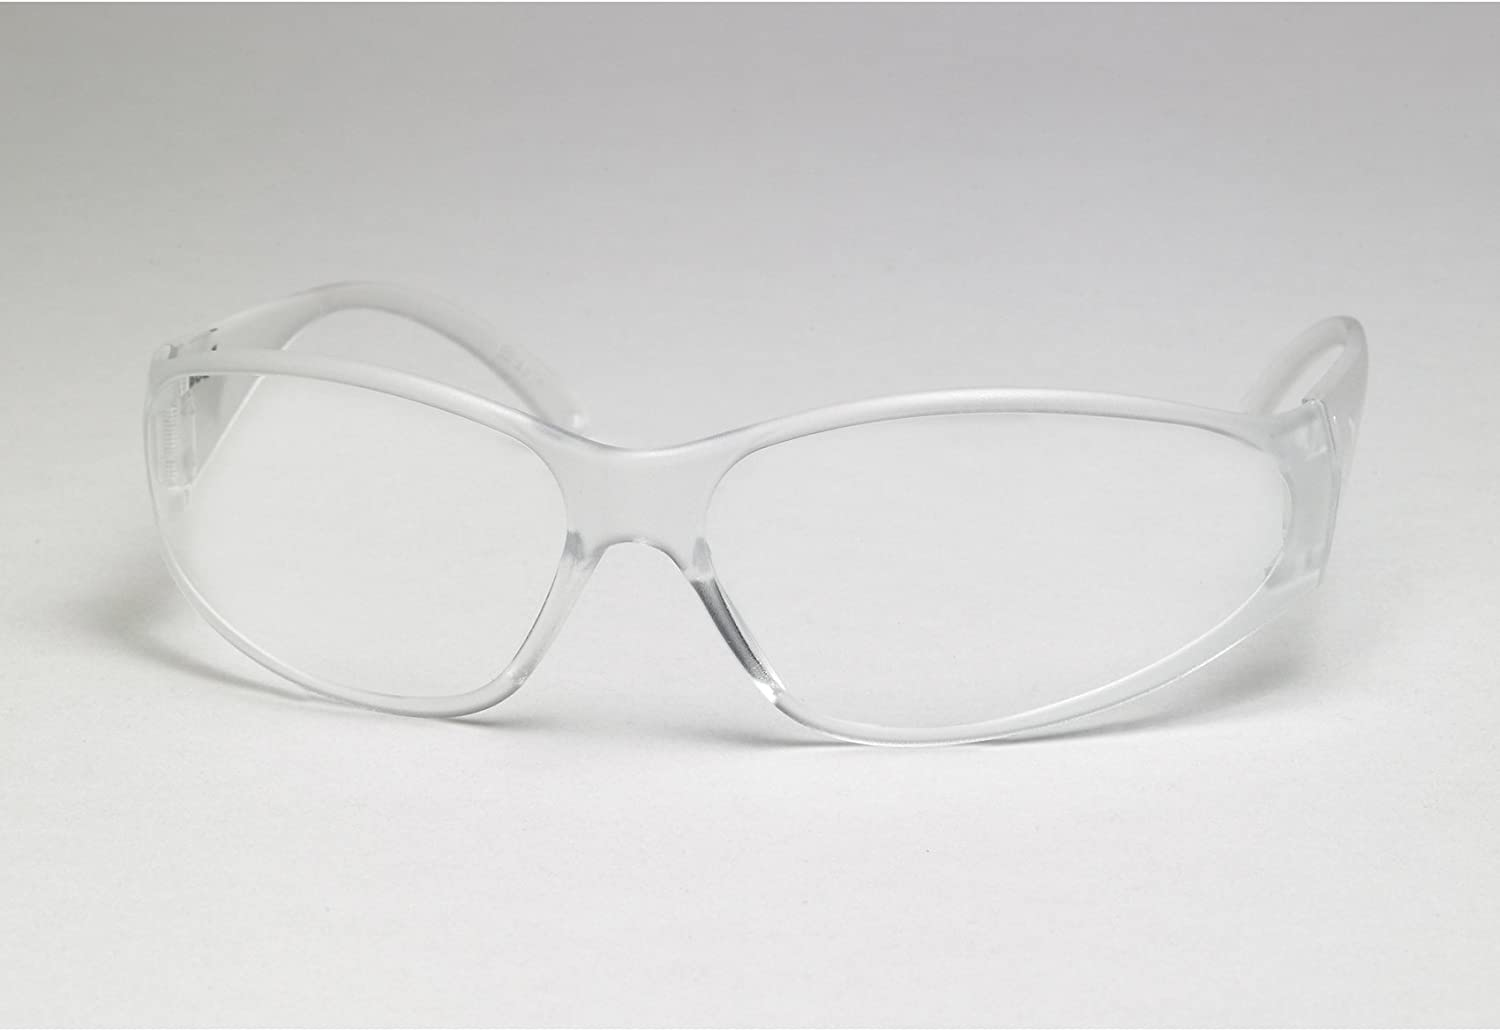 ERB Economy Boas Safety Glasses with Clear Frame and Uncoated Lens - 25 Pack